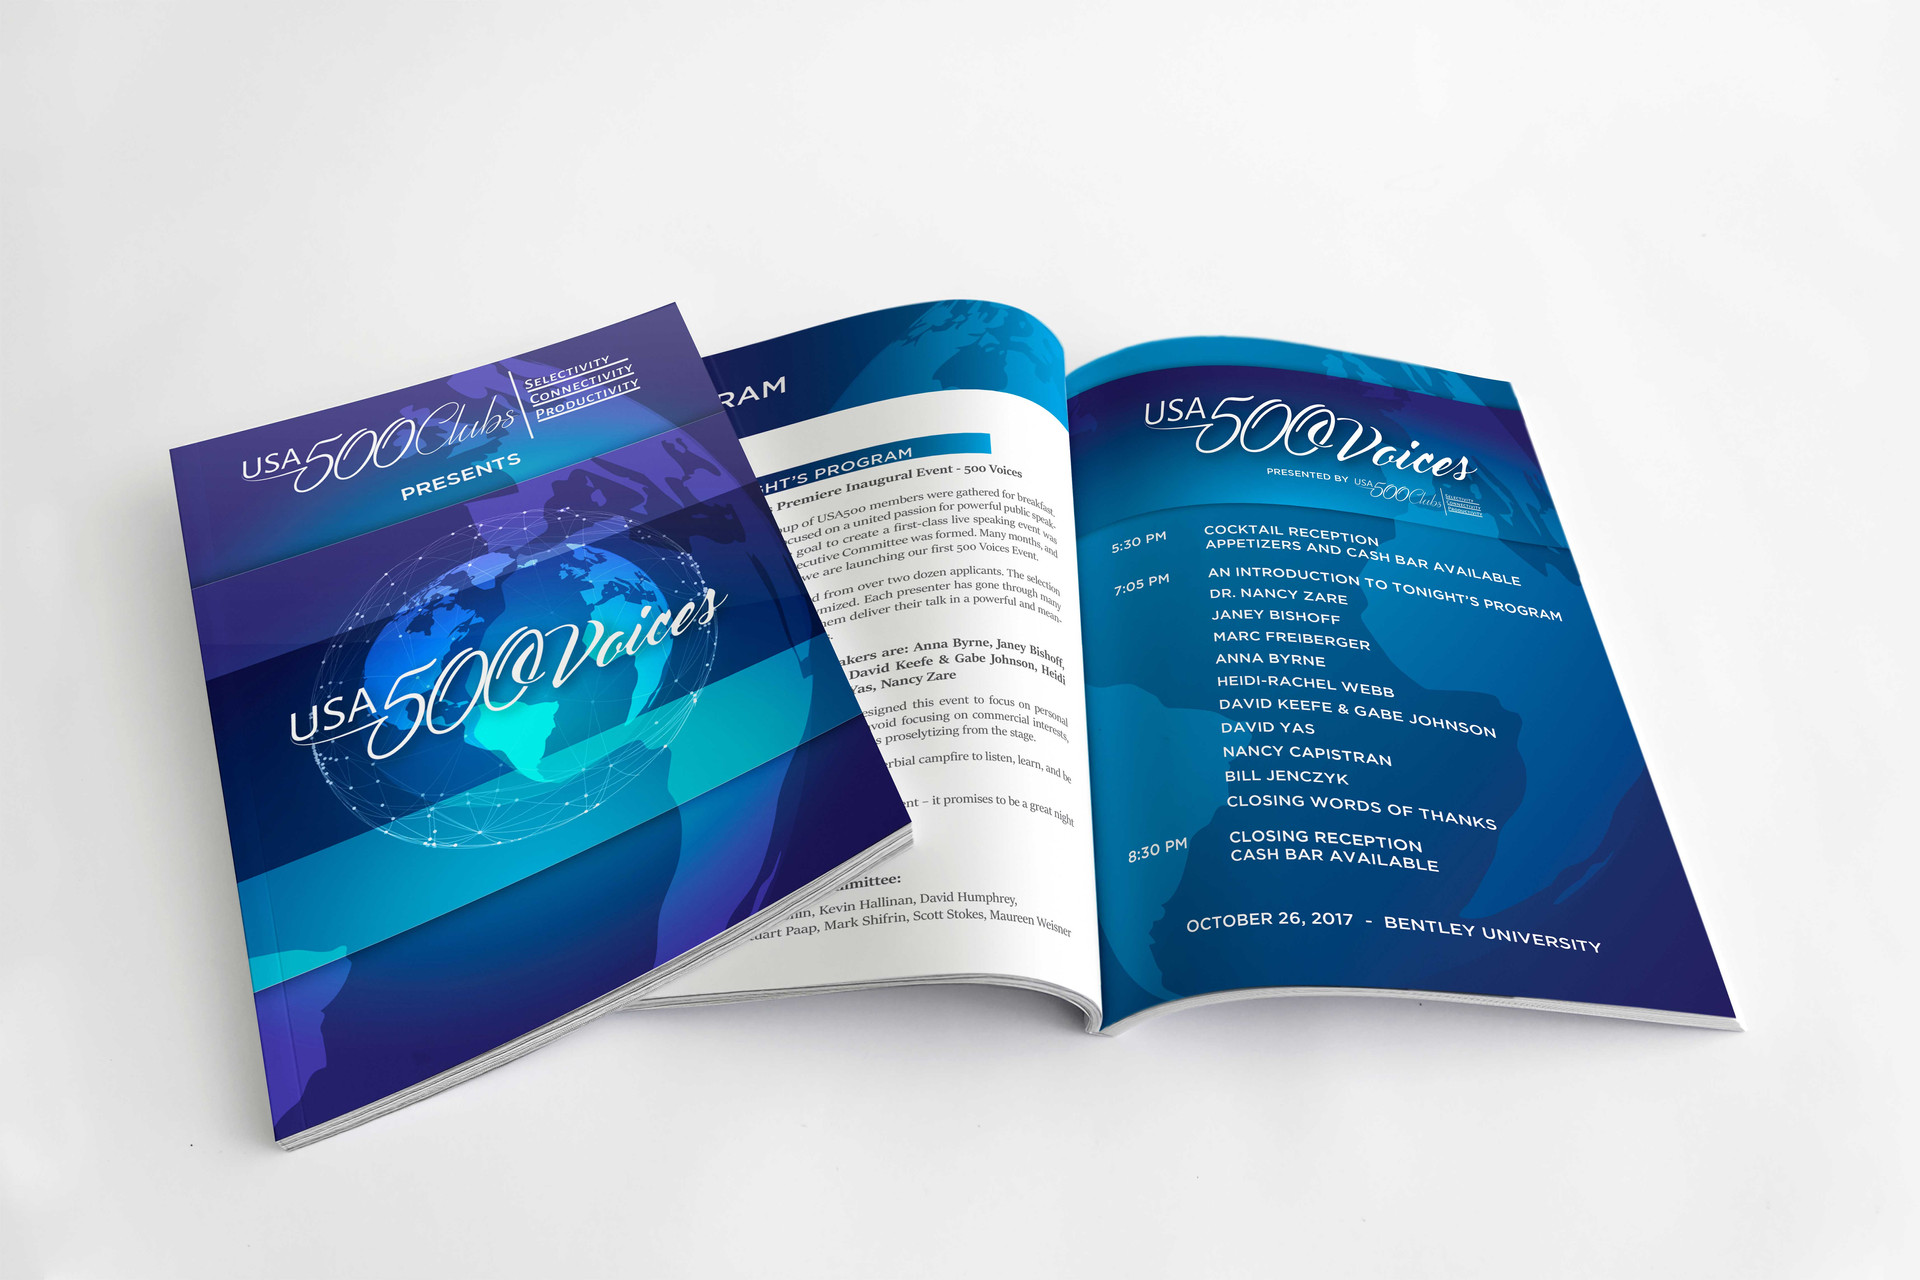 EVENT BRANDING, PROGRAM DESIGN, PRINT DESIGN